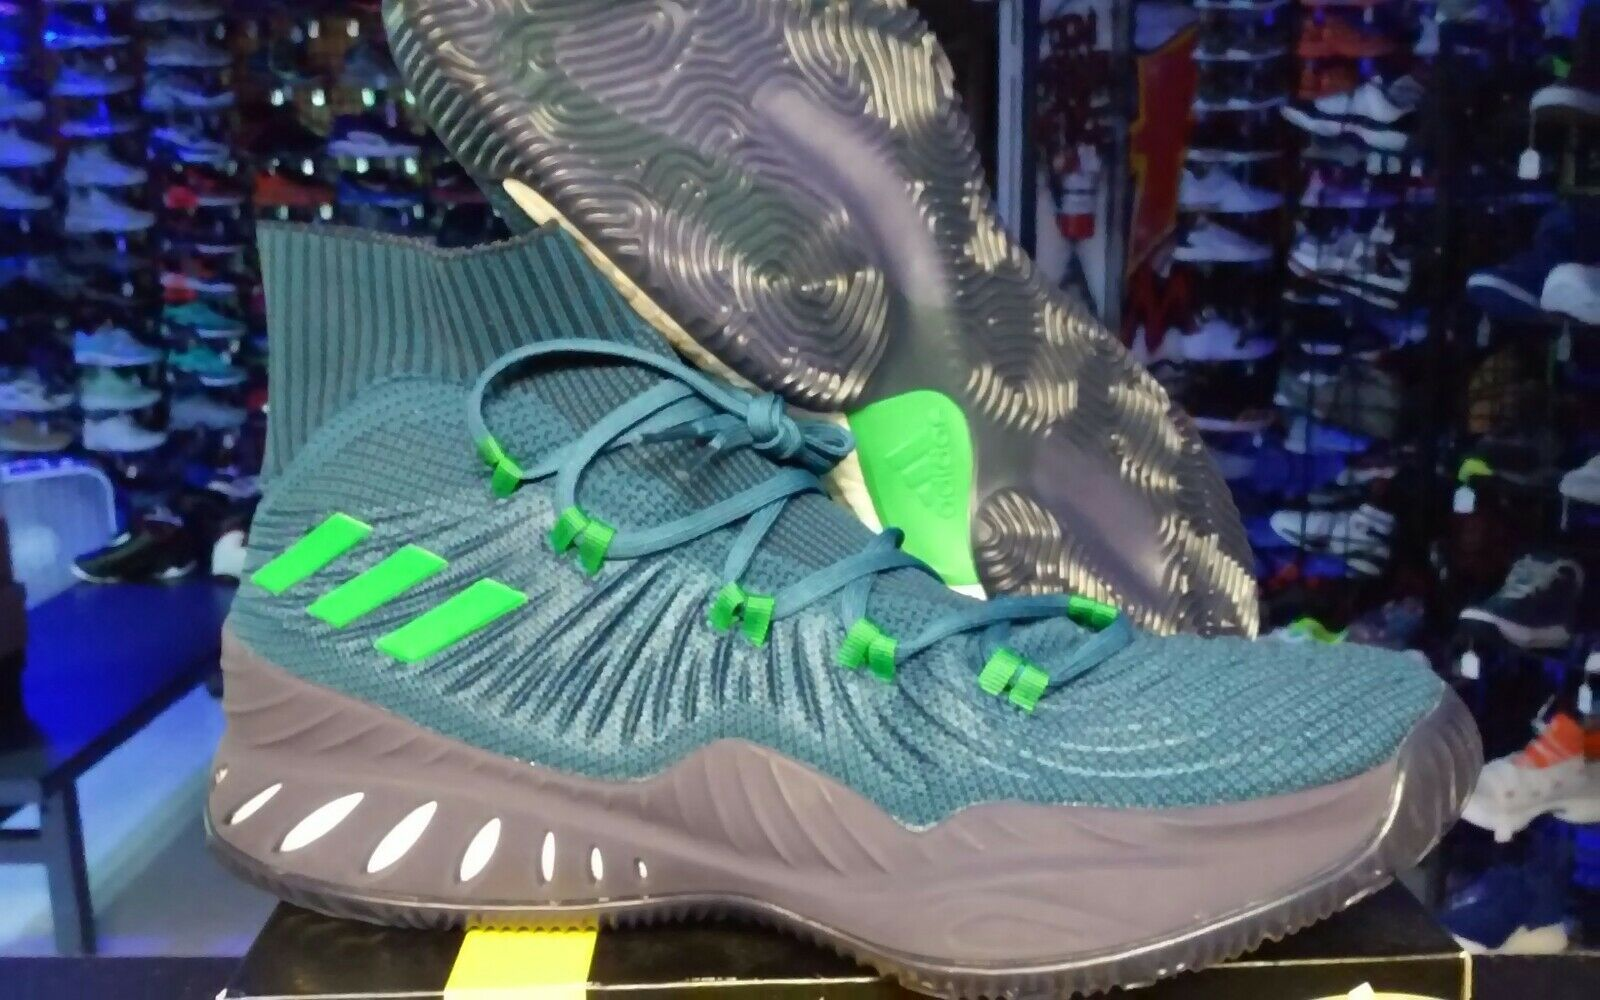 Adidas Crazy Explosive Wiggins basketball shoe sz 14 pe